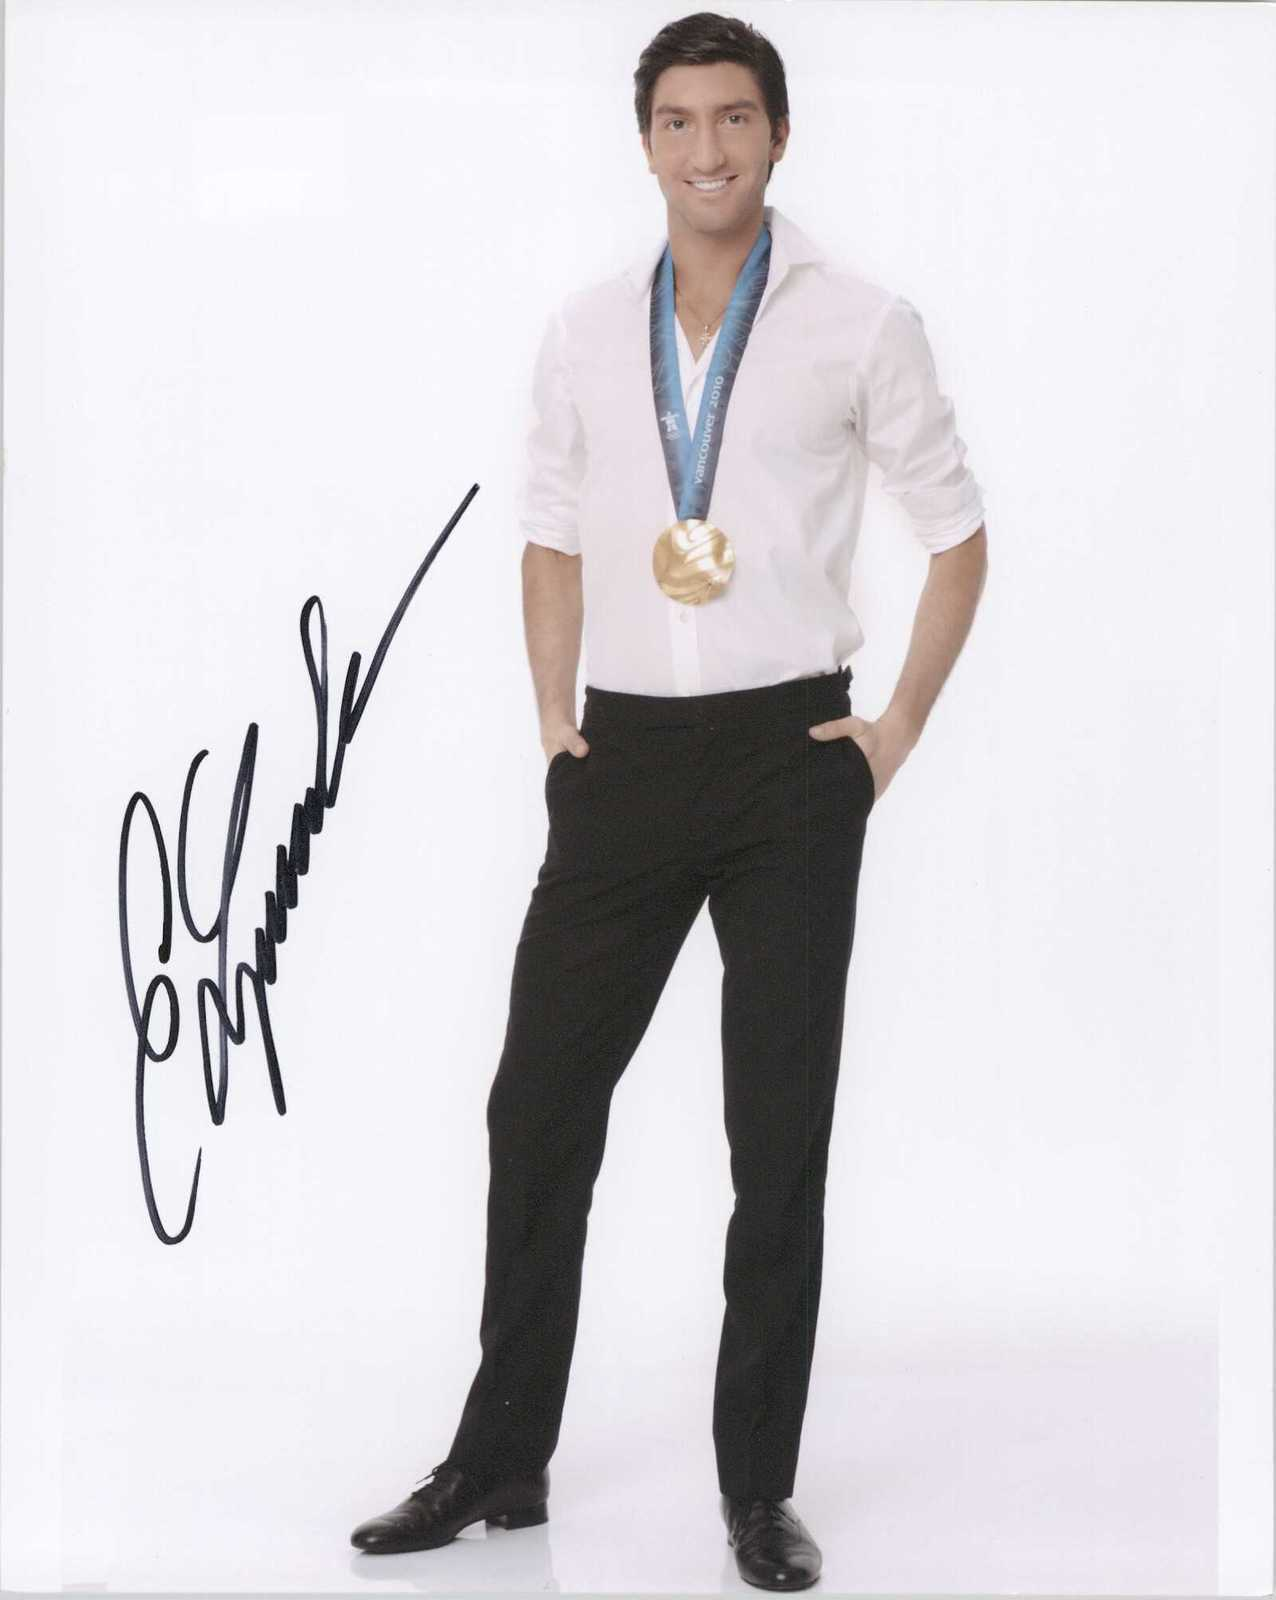 Primary image for Evan Lysacek Signed Autographed Glossy 8x10 Photo